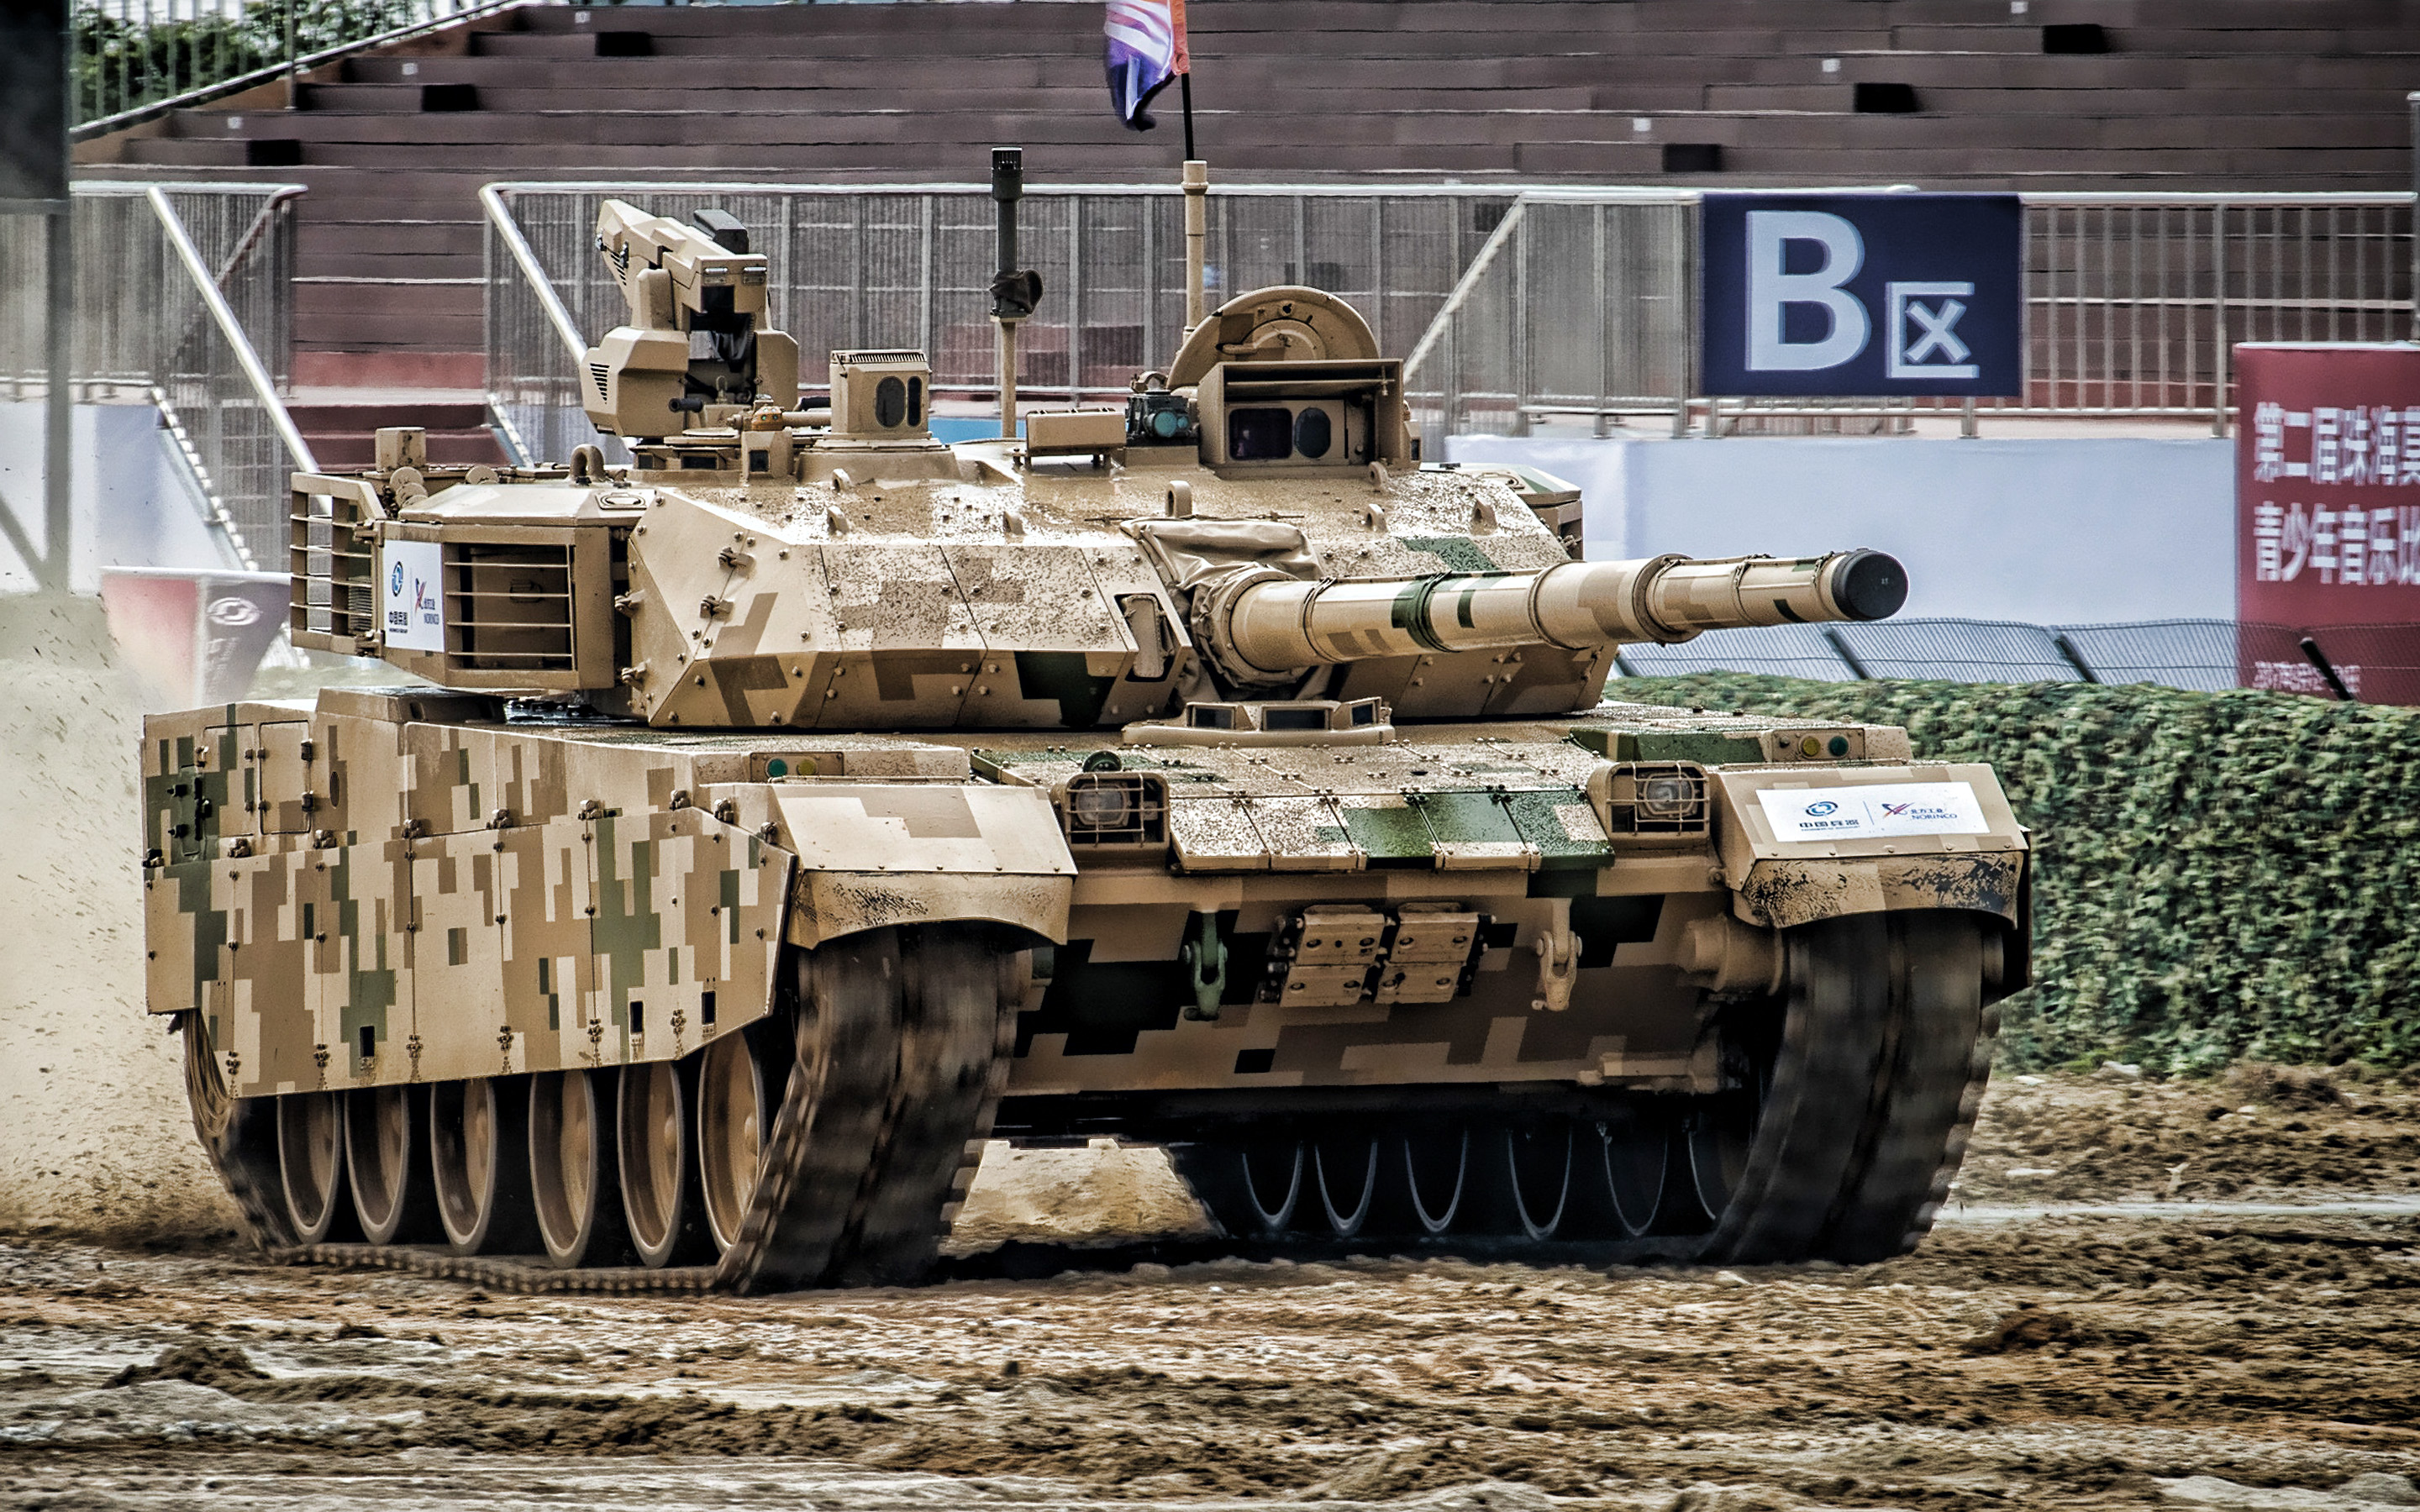 VT-4, Chinese main battle tank, new tanks, modern armored vehicles, China, tanks